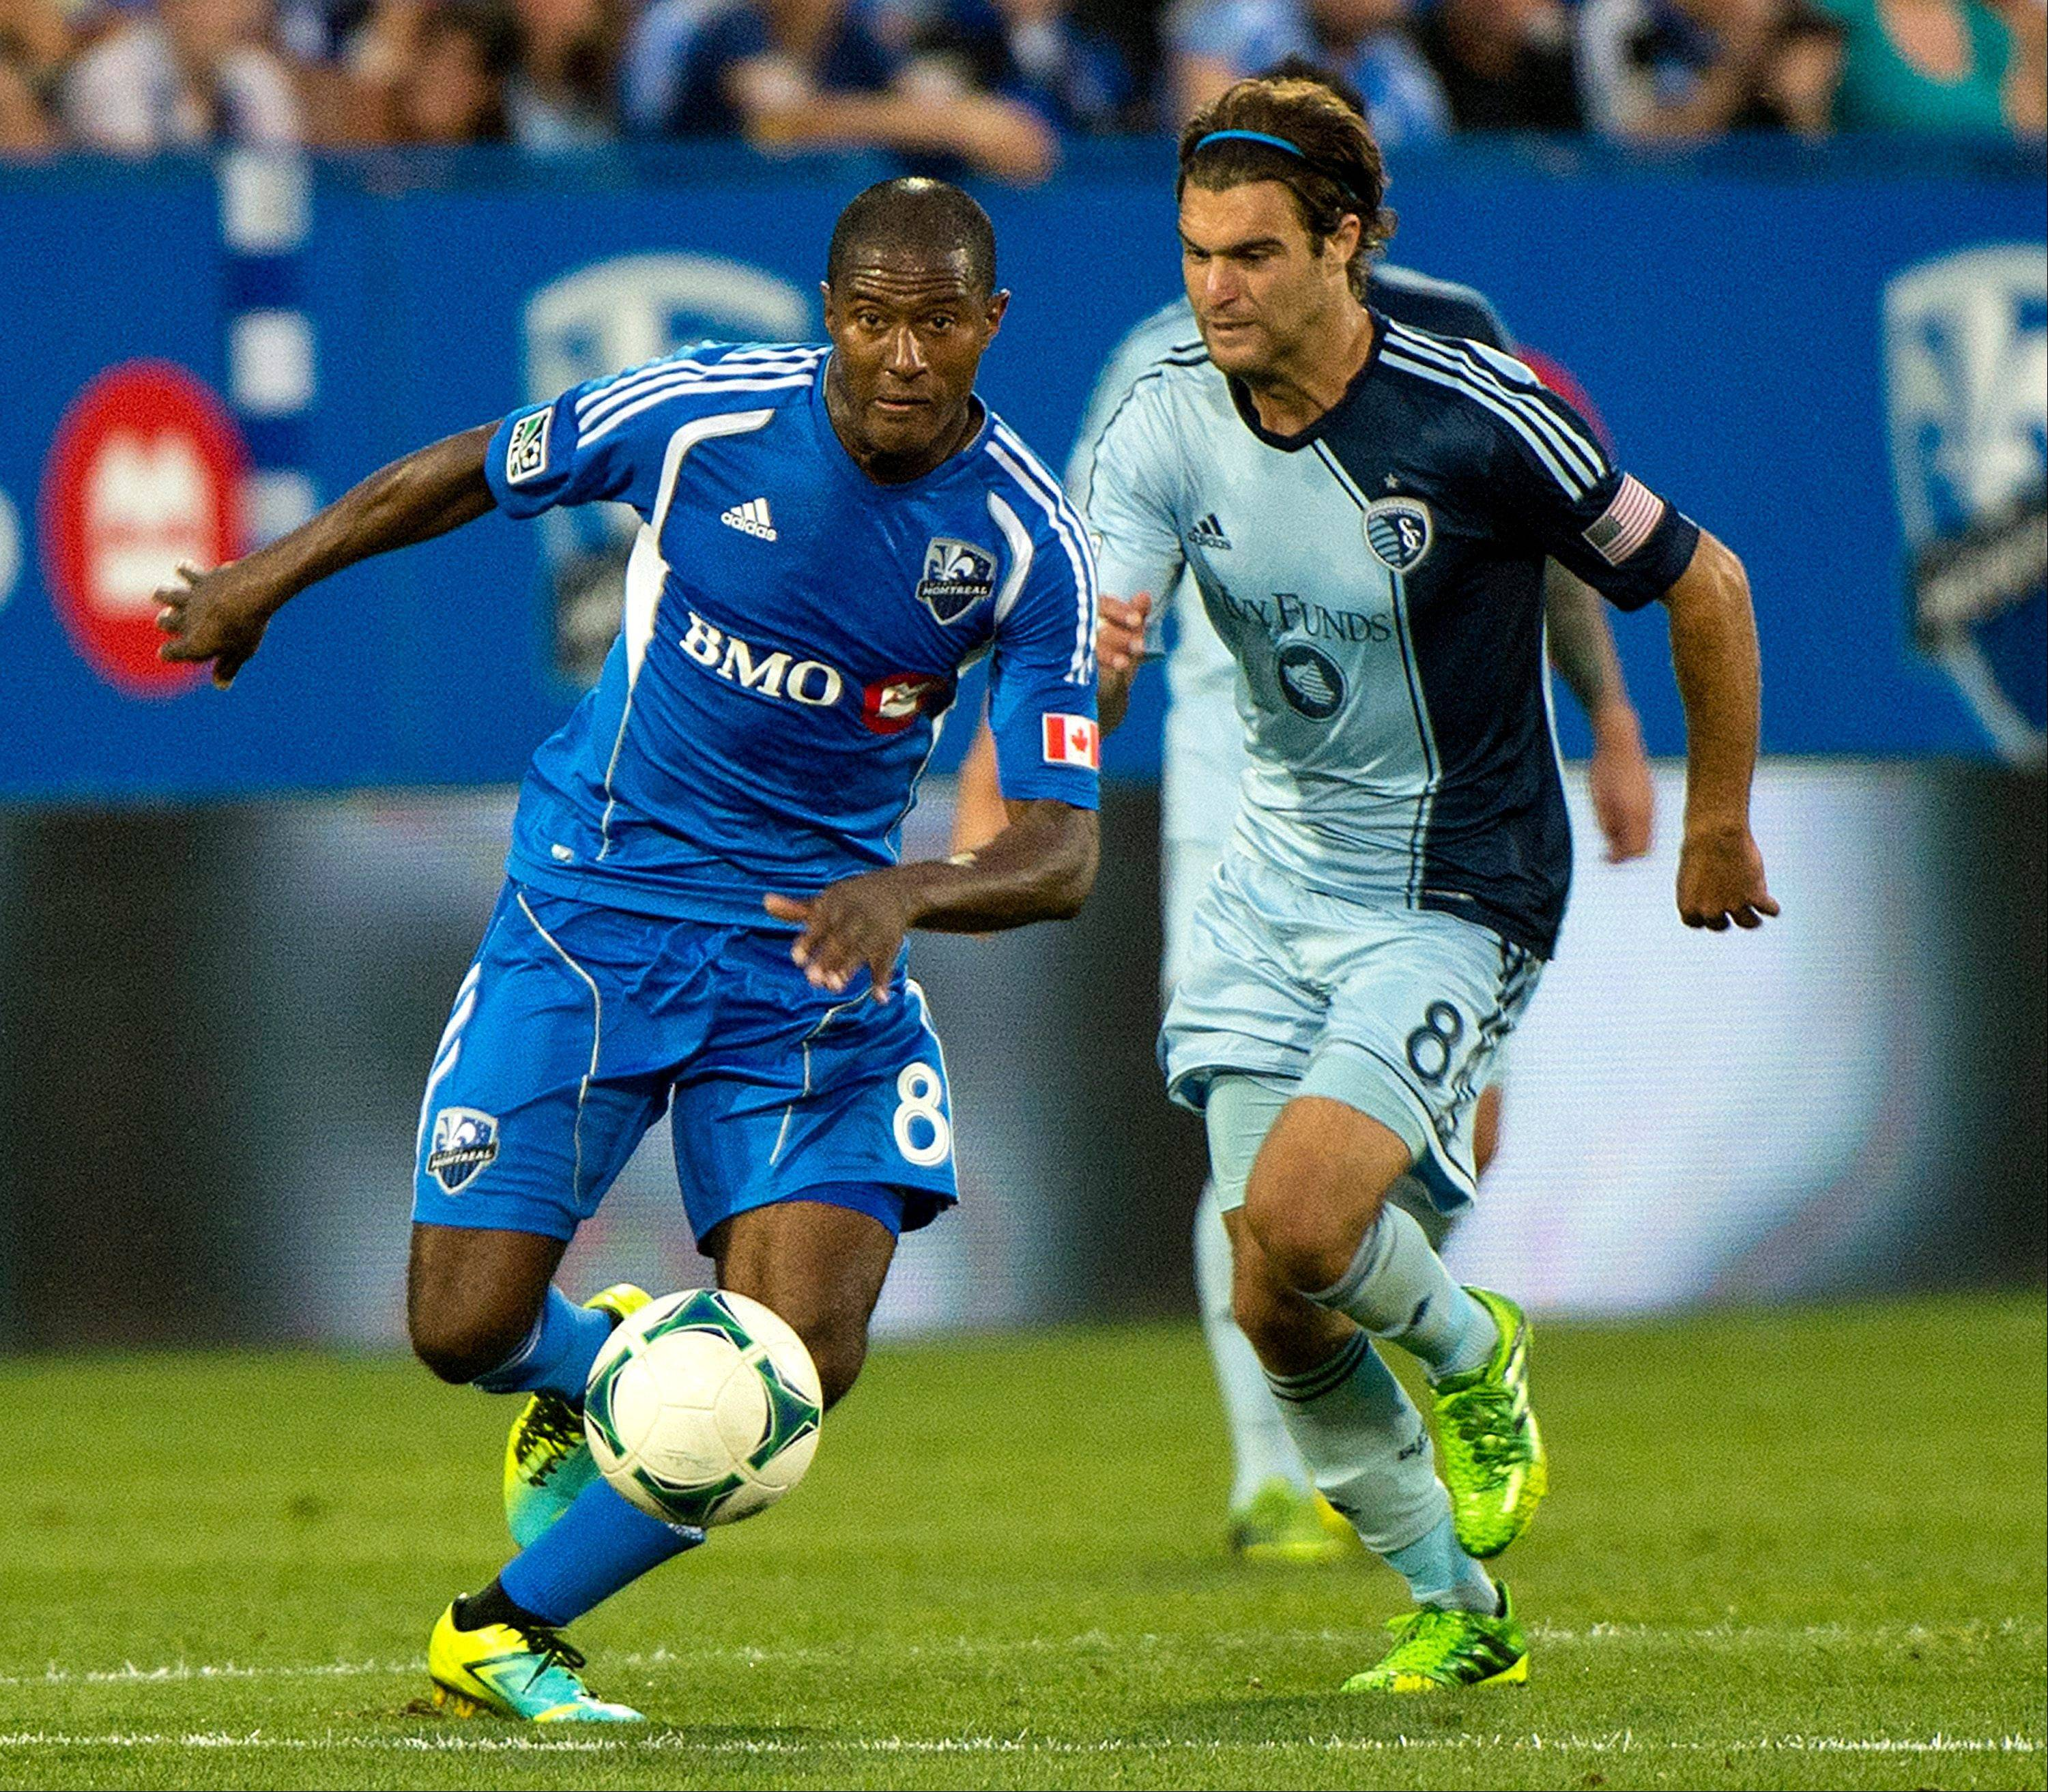 Sporting Kansas City's Graham Zusi, right, will be among the MLS all-stars to take on AS Roma on Wednesday in Kansas City.